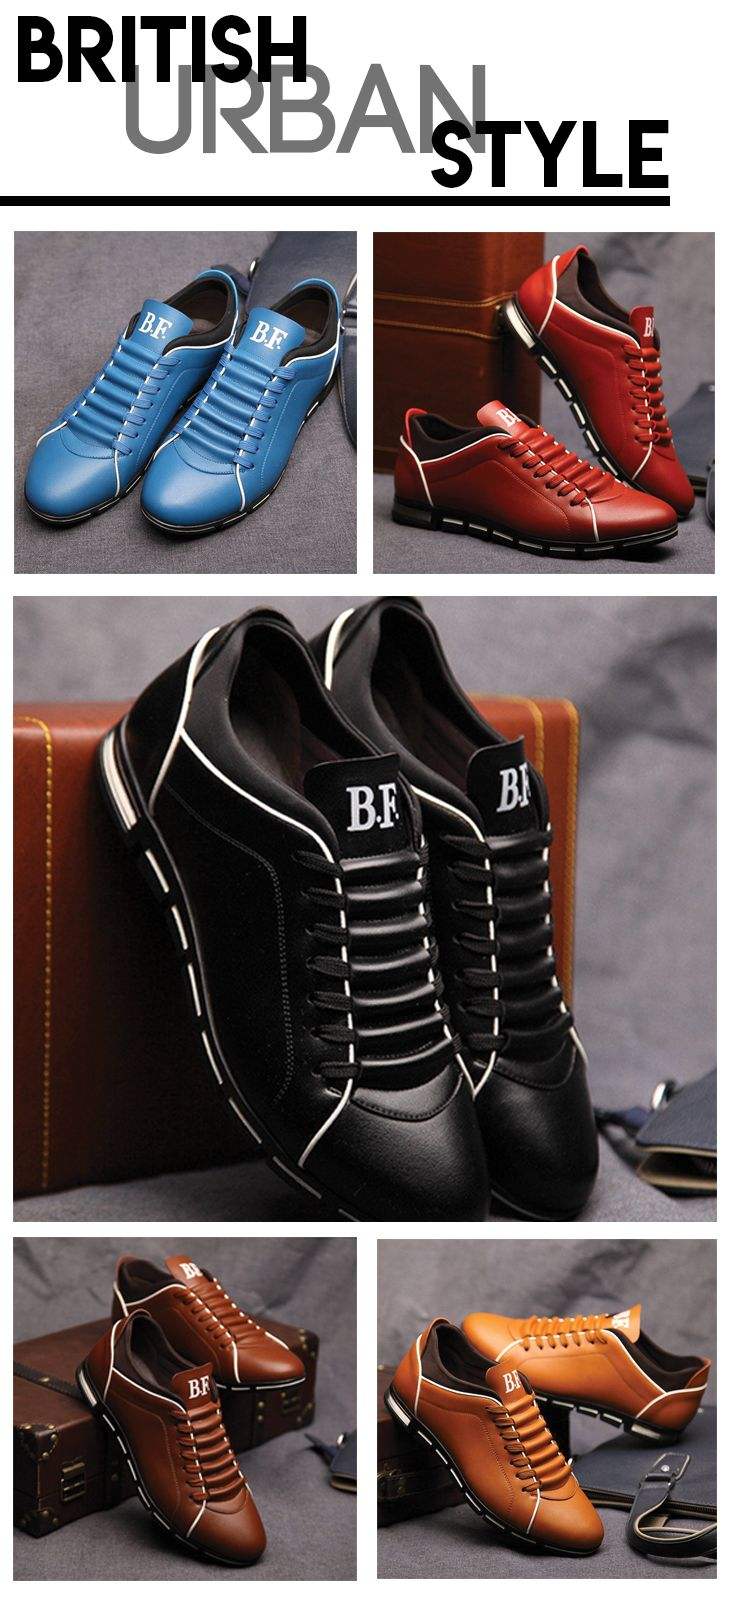 eee8944e40f8 Men s British Urban shoes - Clean style and look at the best value  -----------  Urbanstyle men s attire fashion UK leather casual sneaker   mensshoes   ...